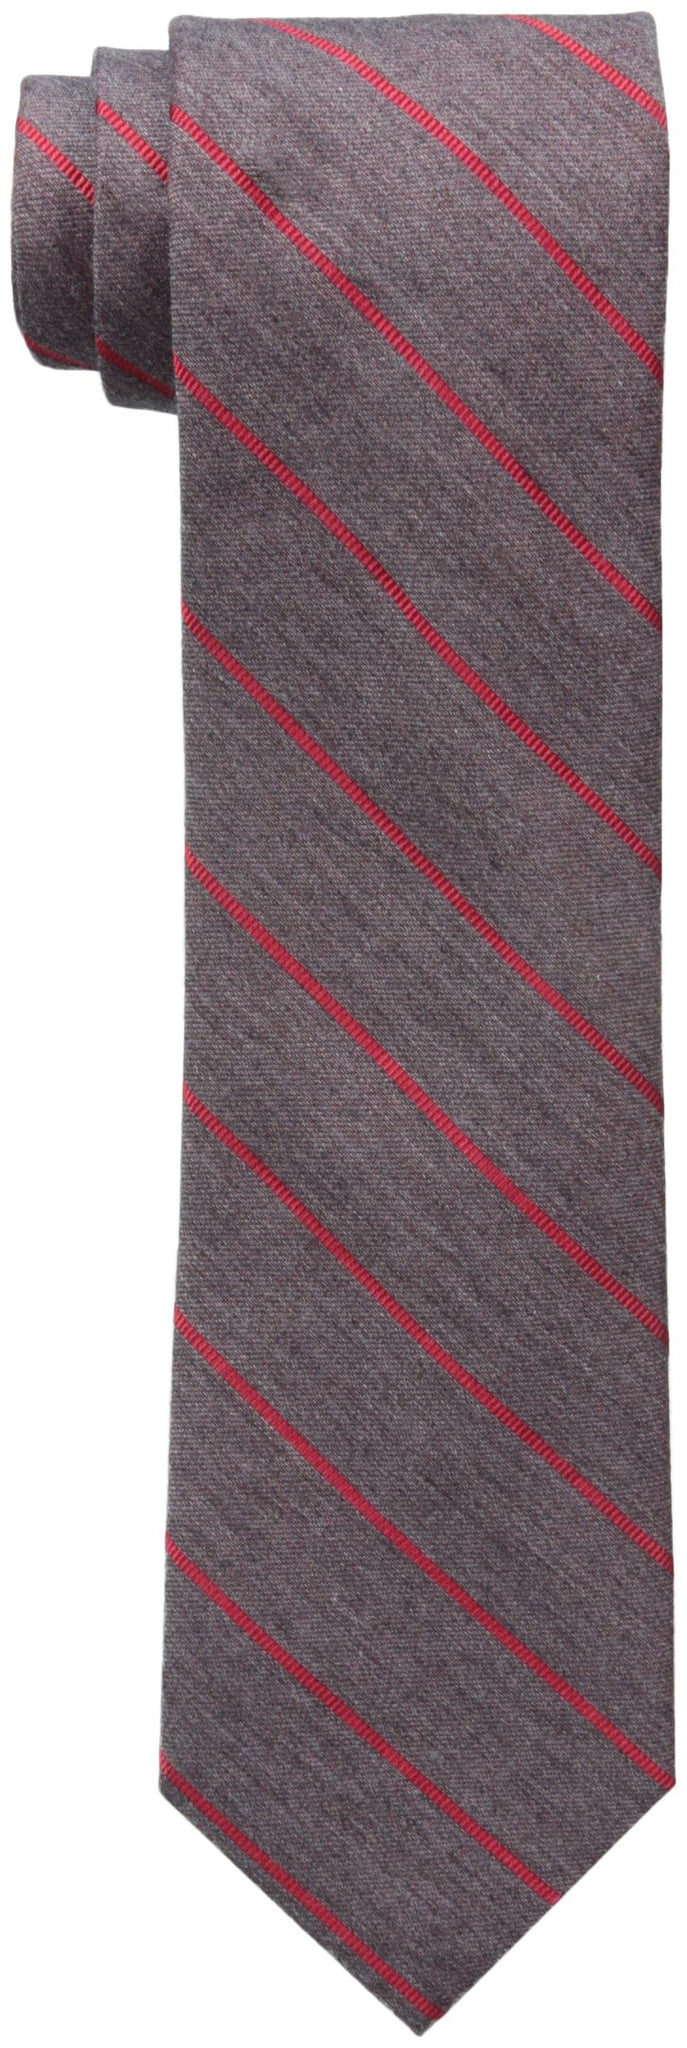 Calvin Klein Red Hot Repp Stripe Tie Charcoal One Size